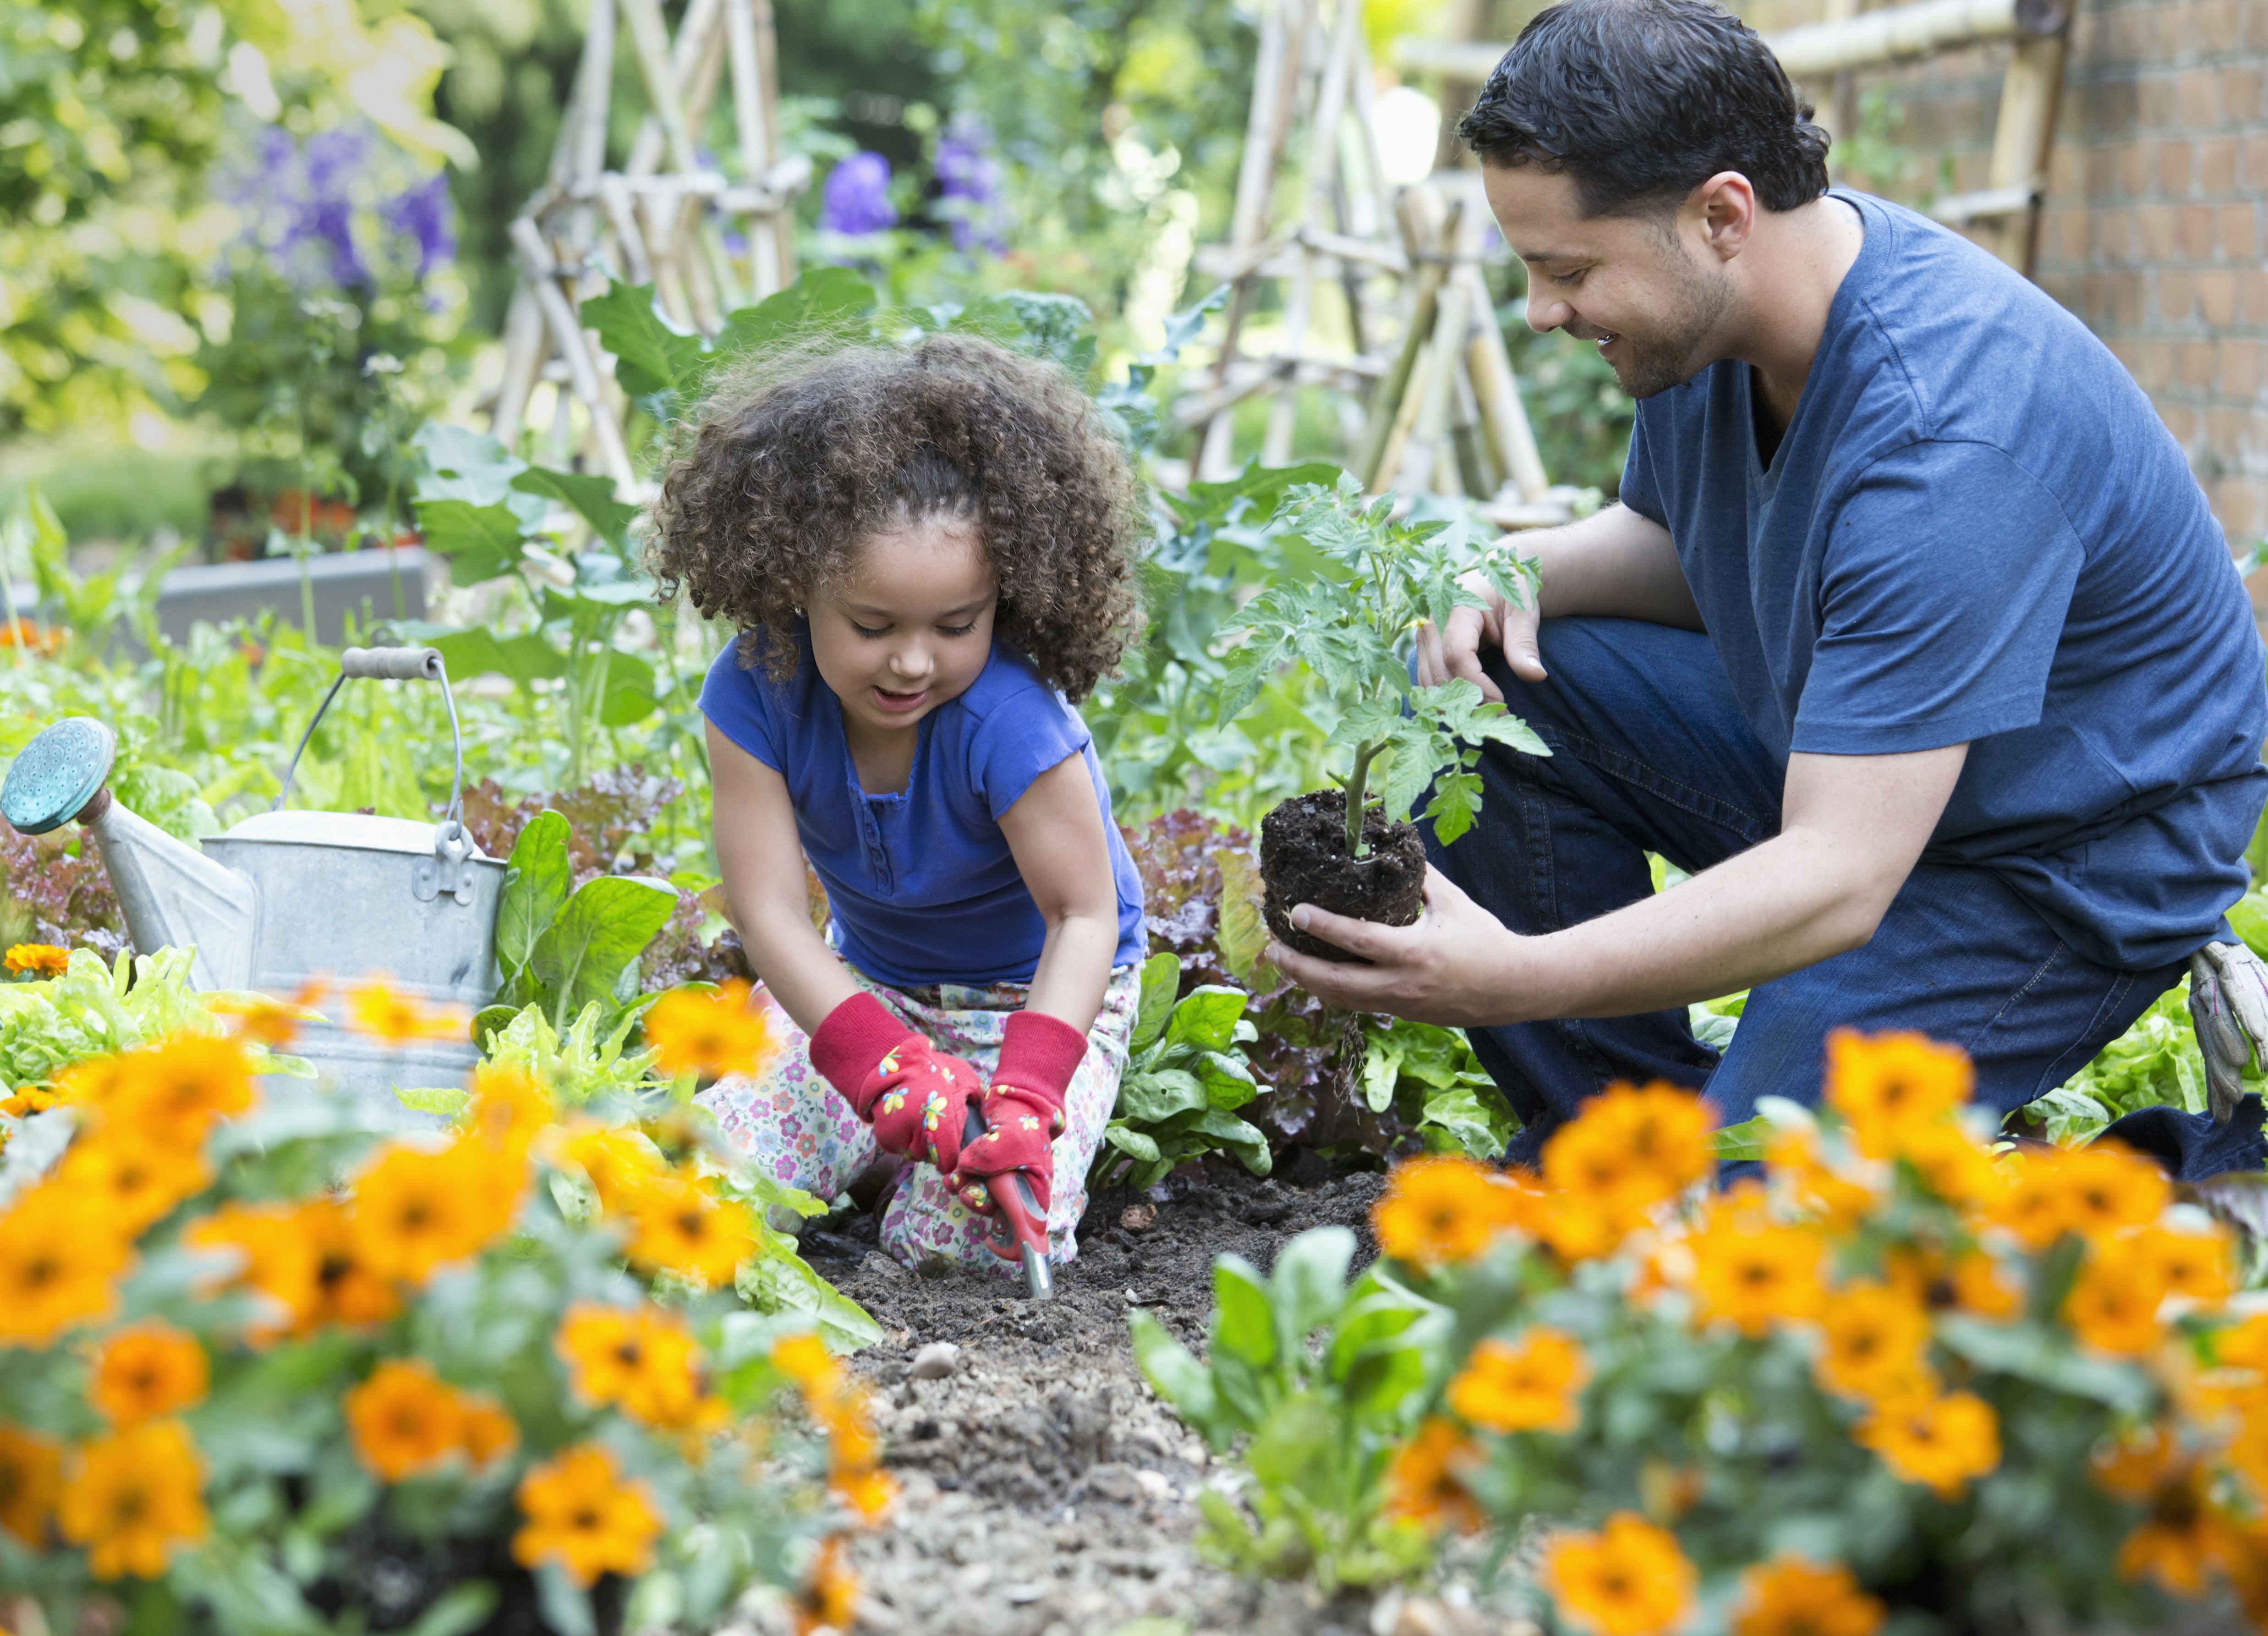 Hispanic father and daughter gardening together